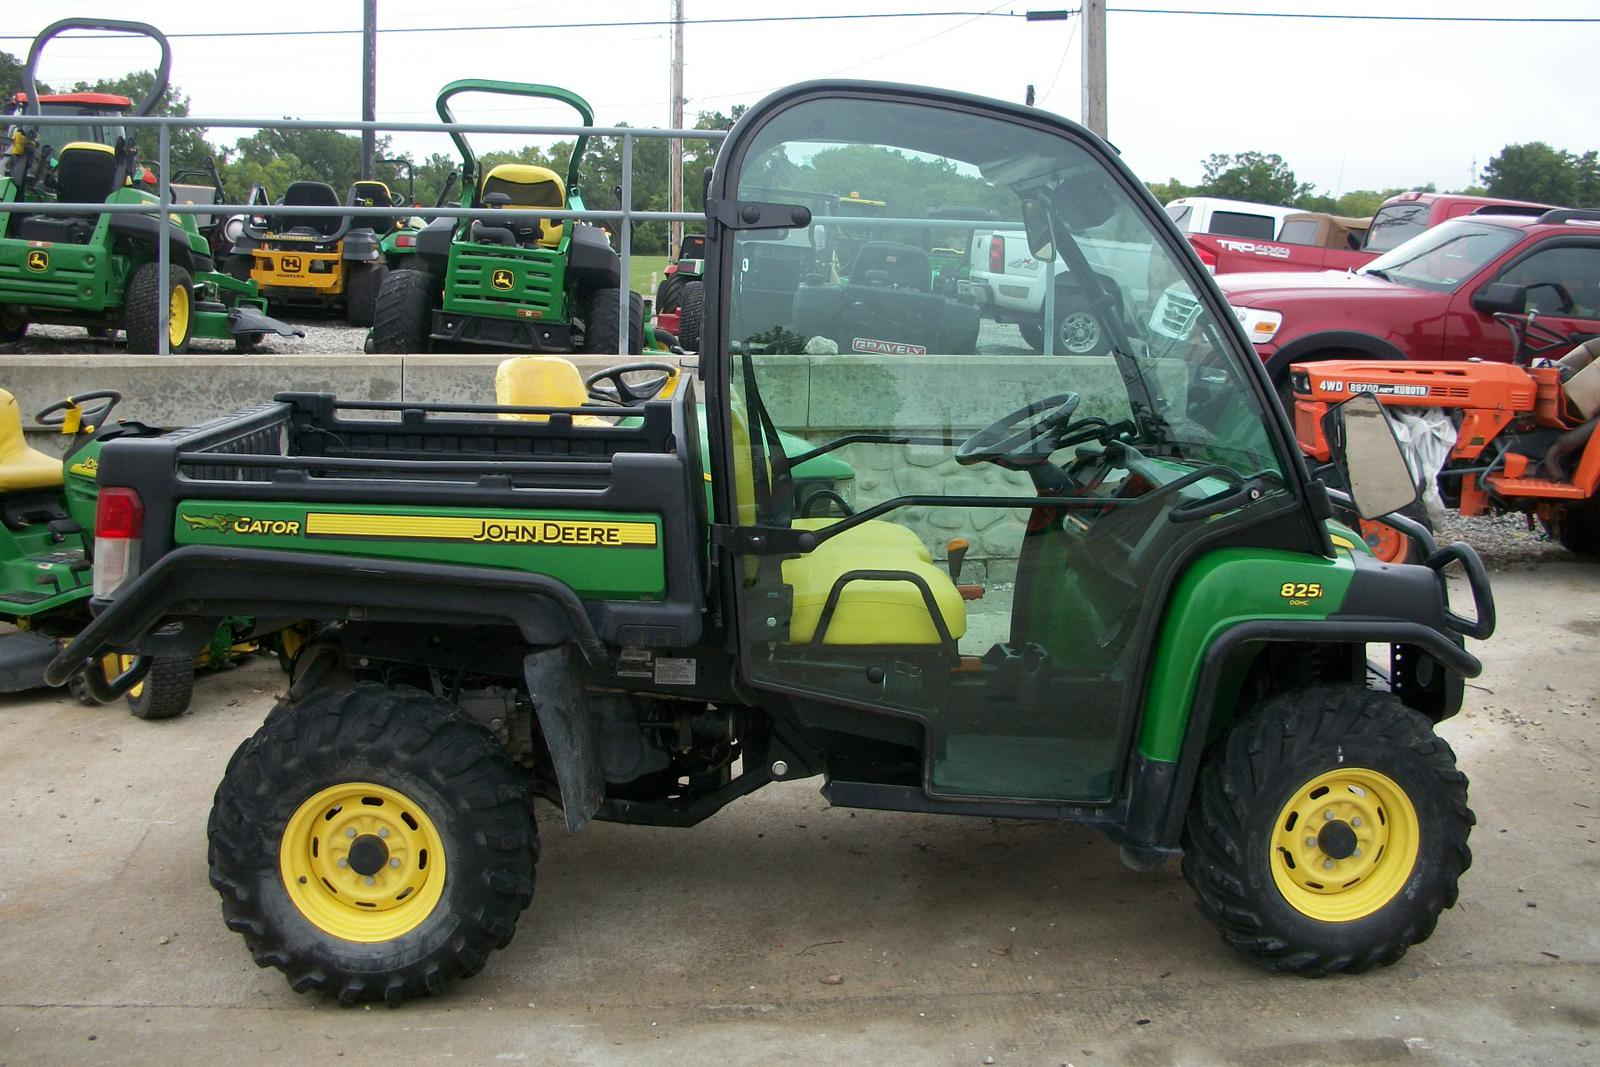 2014 john deere gator™ xuv 825i for sale in columbia, mo. farm power